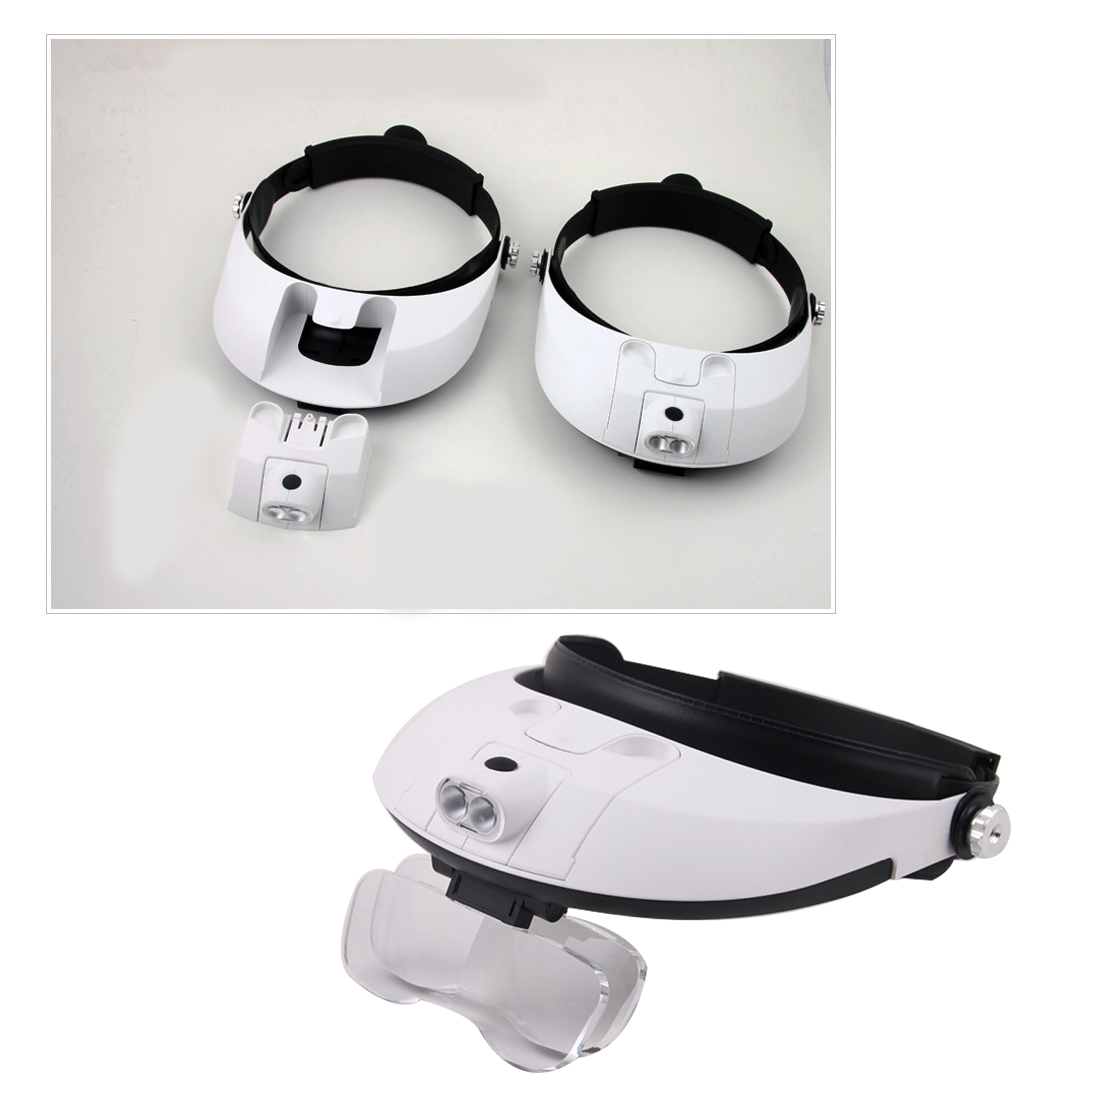 5Lens 2.5x 1.0x 1.5x 2.0x Headband Binoculars Third Hand Magnifier Light Jewelry Repair Reading Magnifying Glass Dental Loupes new portable 45x magnifier magnifying glass with light detachable reading engraving jewelry glasses loupes